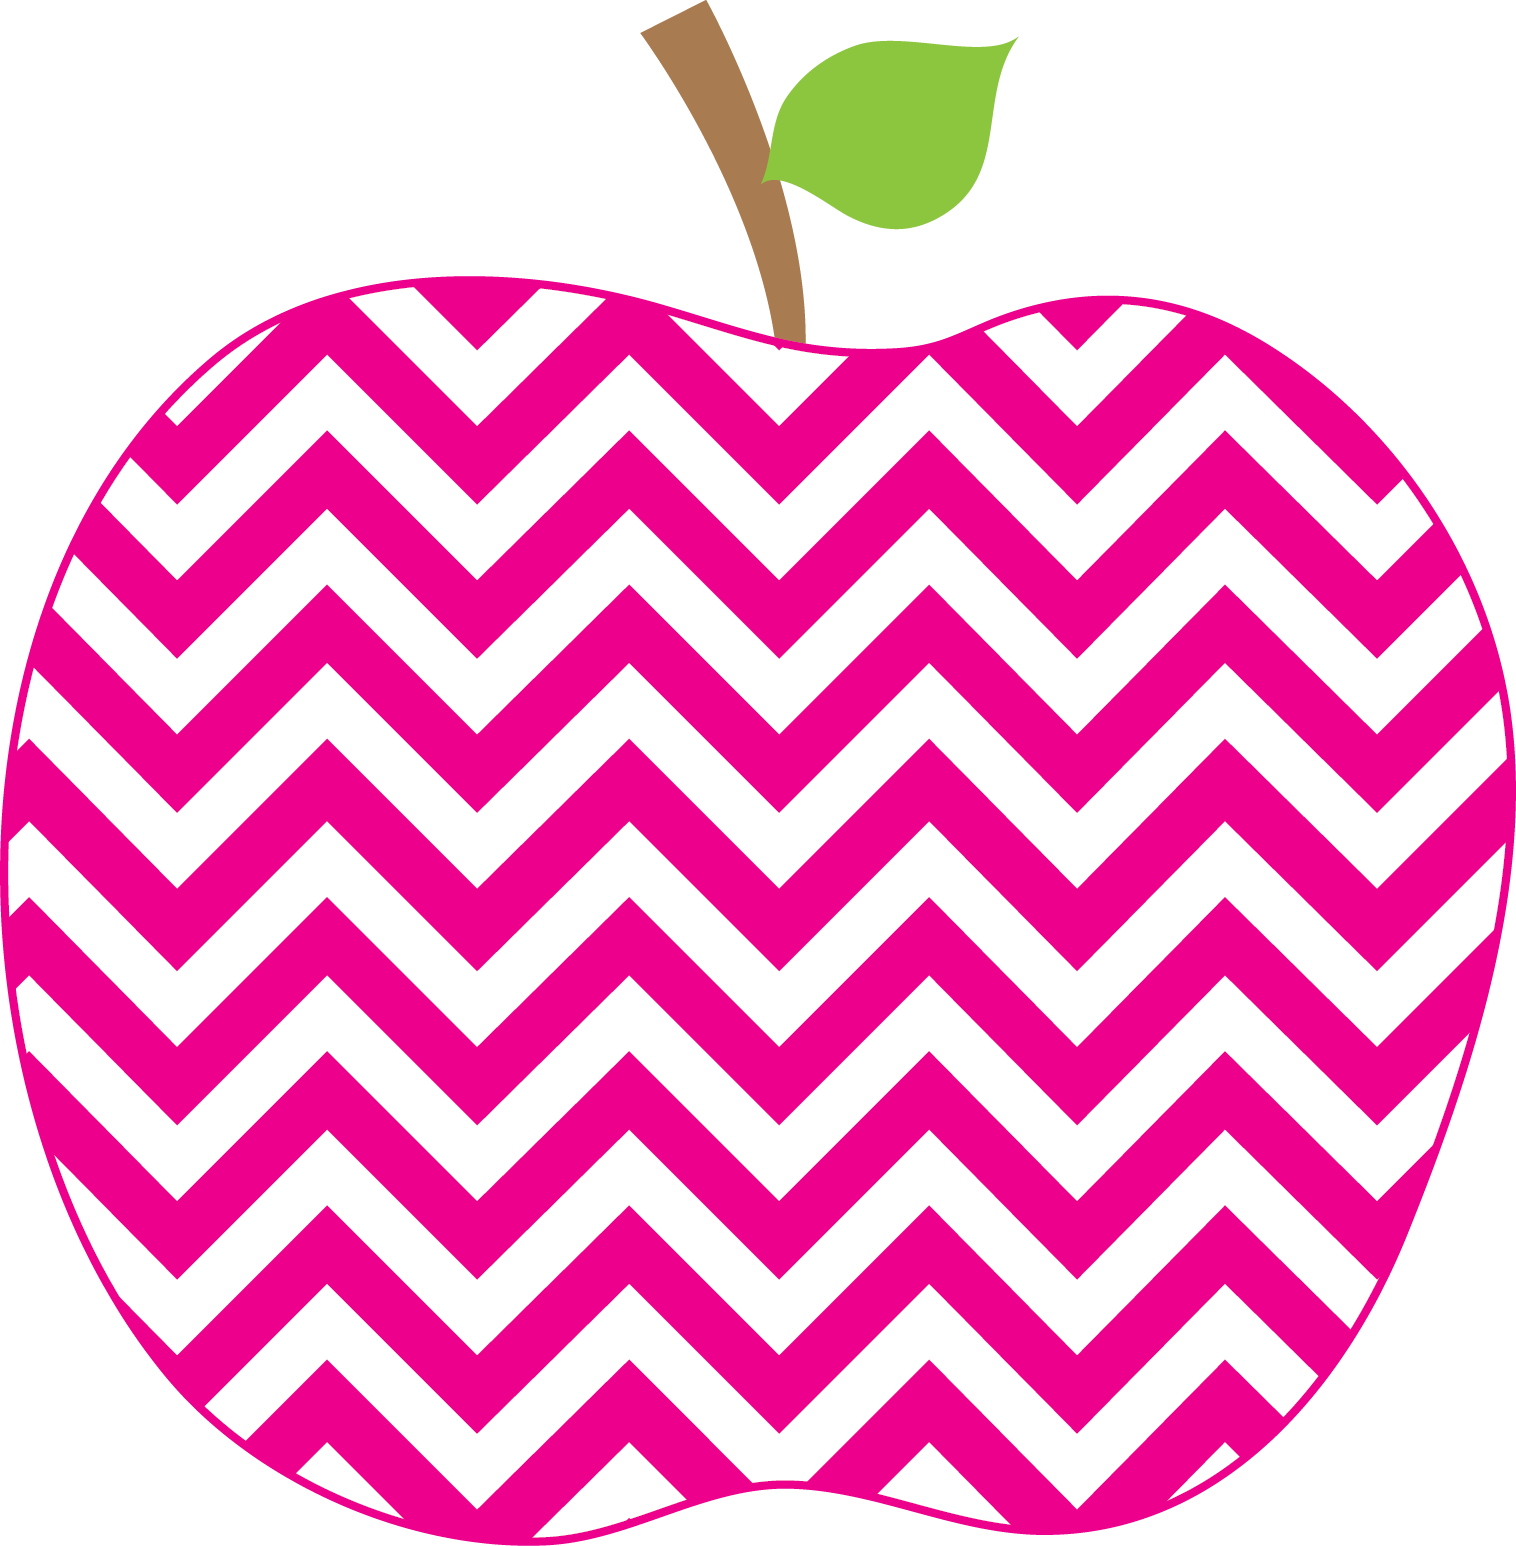 Apple chevron clipart free graphic royalty free Apple+Chevron+-+Bright+Pink.png.cf.png (1516×1546)   dream closet ... graphic royalty free